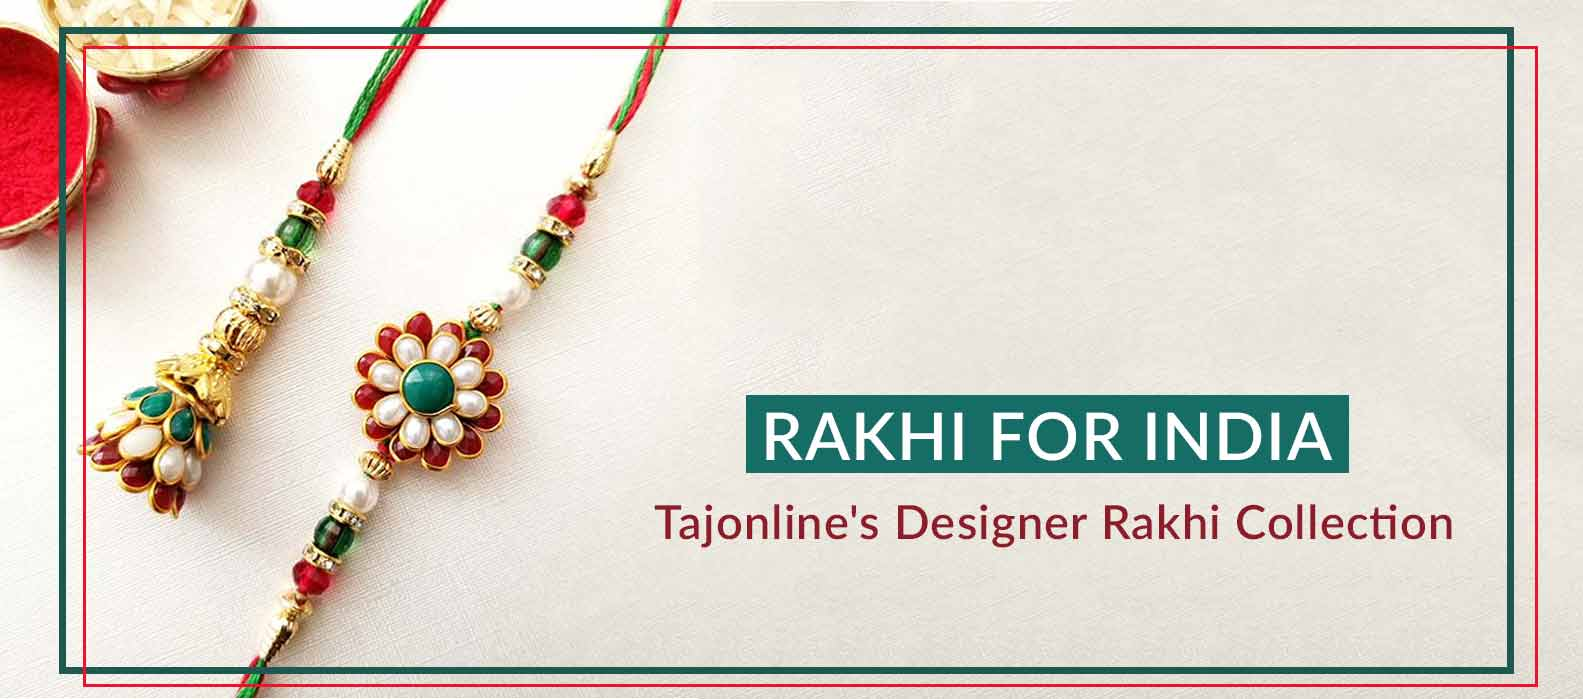 Rakhi for India- Tajonline's designer rakhi collection